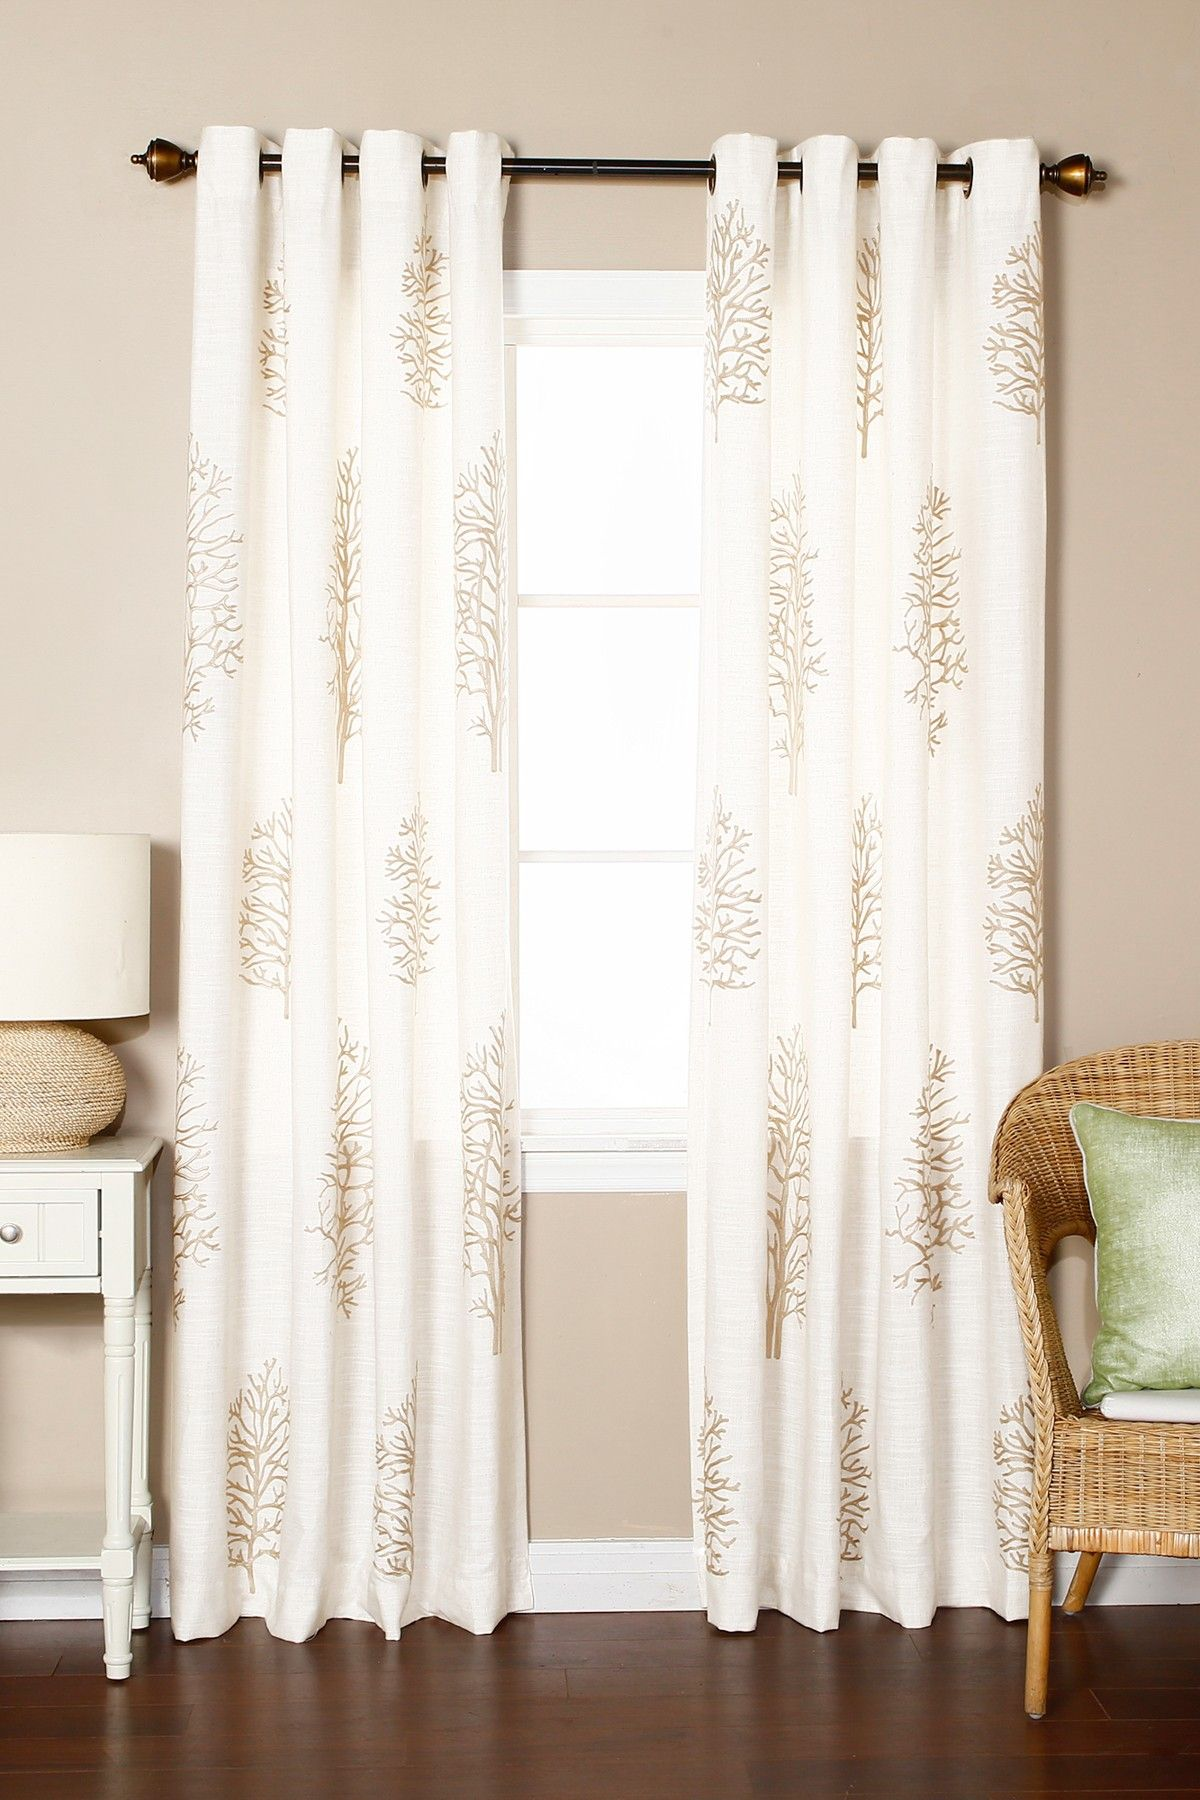 Tree Embroidered Faux Linen Grommet Top Curtains - Set of 2 Panels - White by Best Home Fashion Inc. on @HauteLook